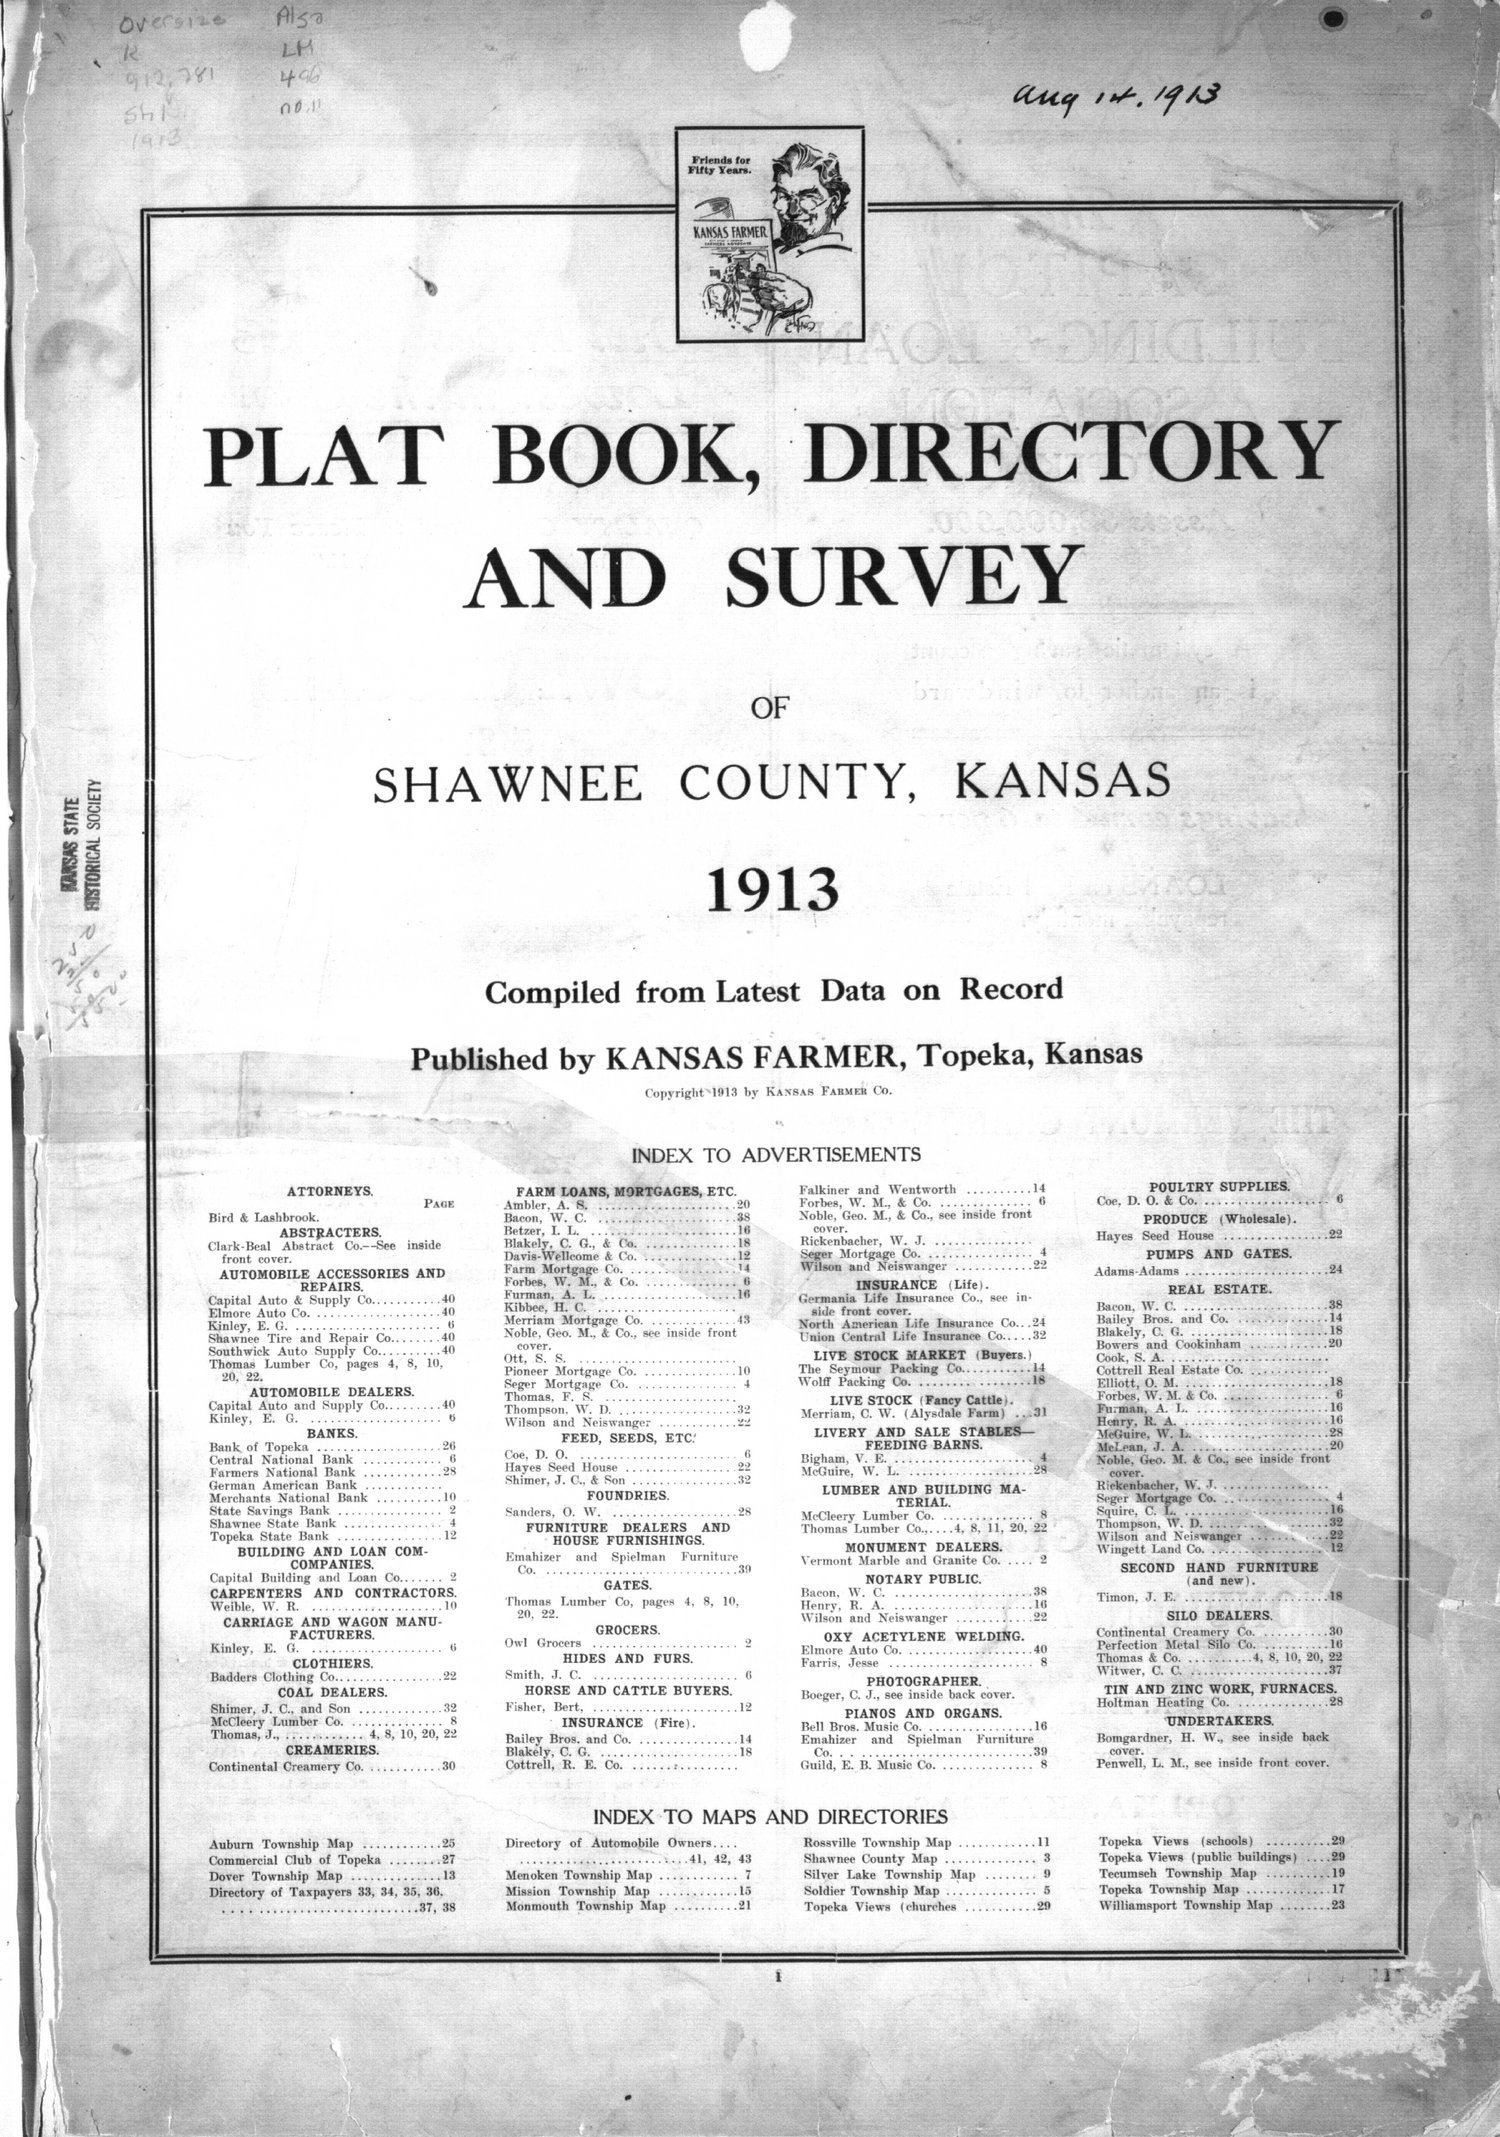 Plat book, directory and survey of Shawnee County, Kansas - 1